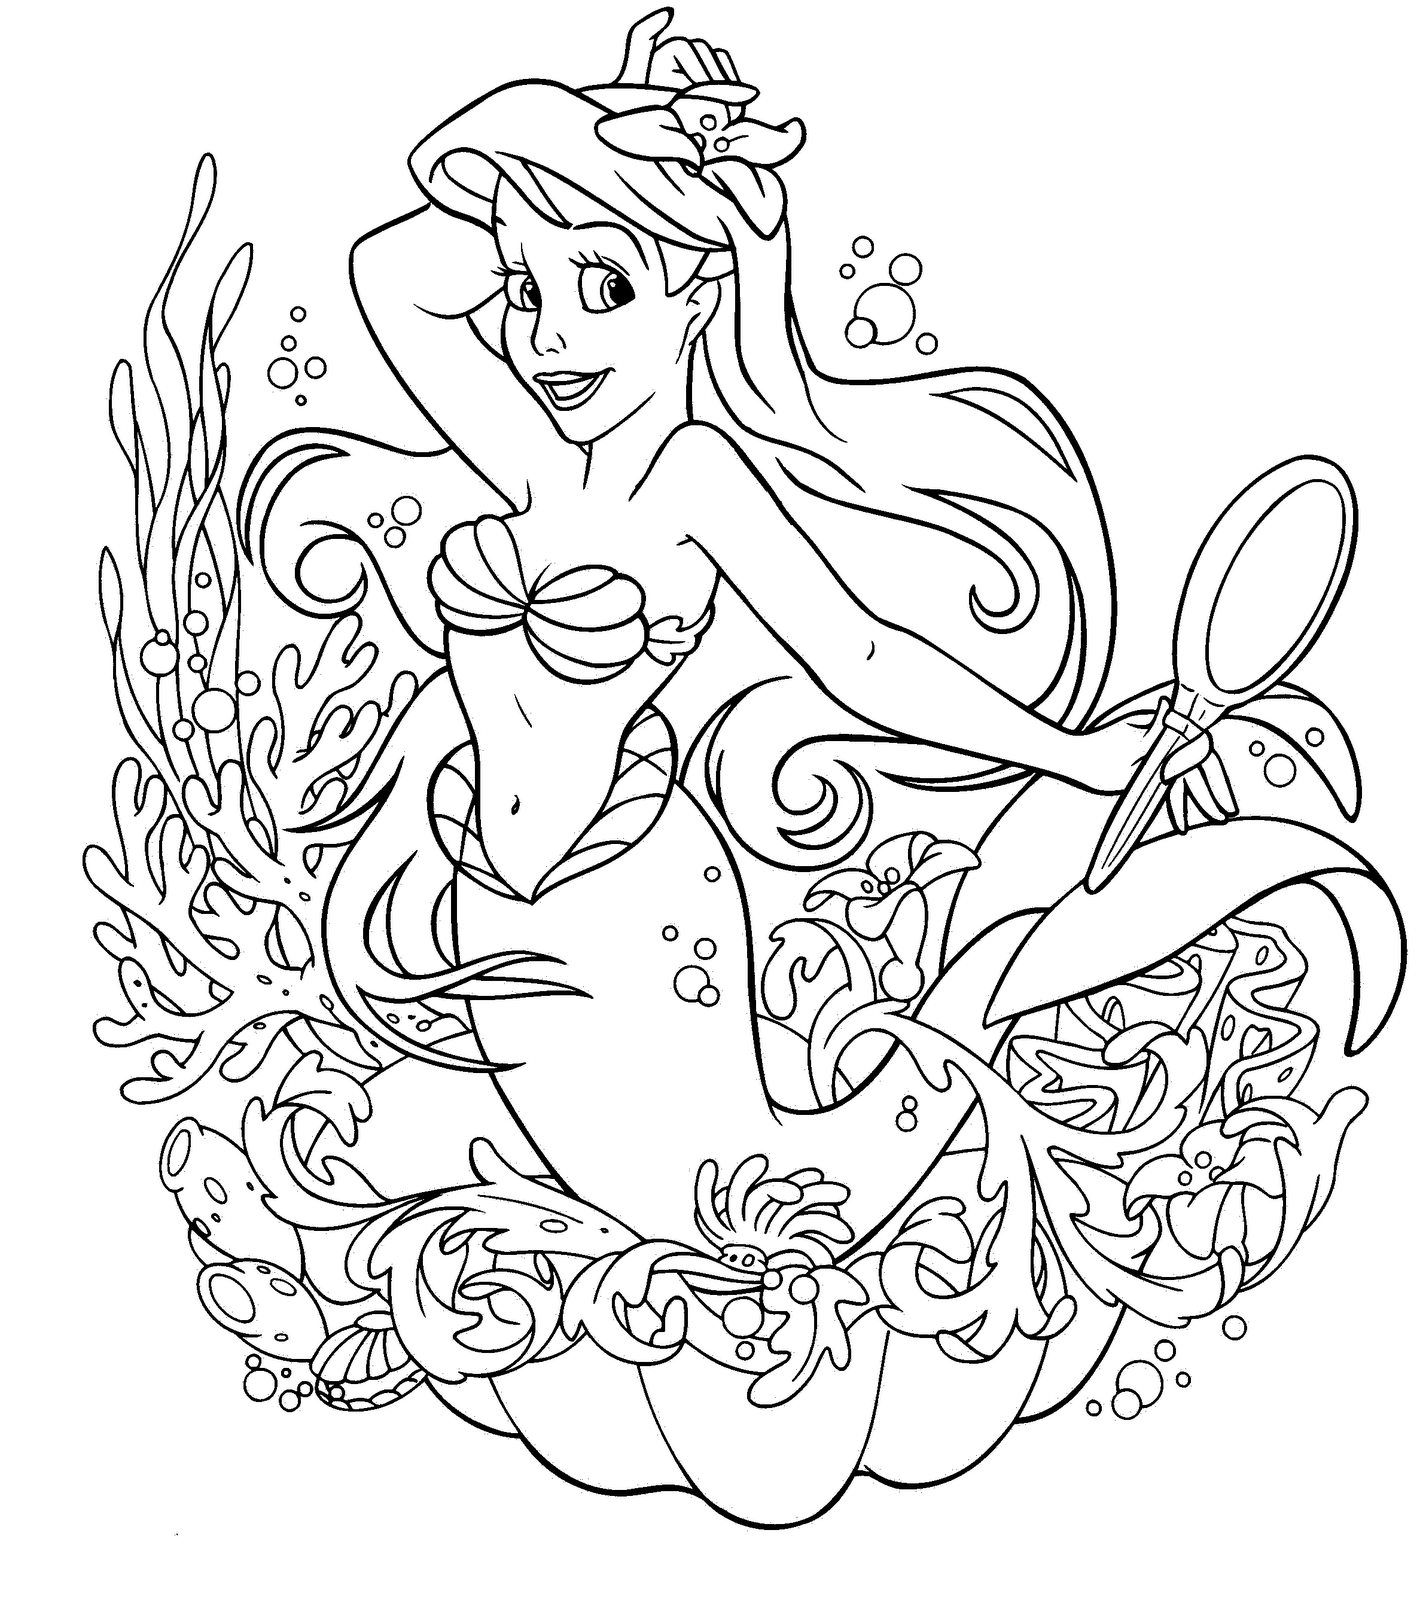 Free Printable Frozen Coloring Pages Earlymoments  - free disney coloring pages printable